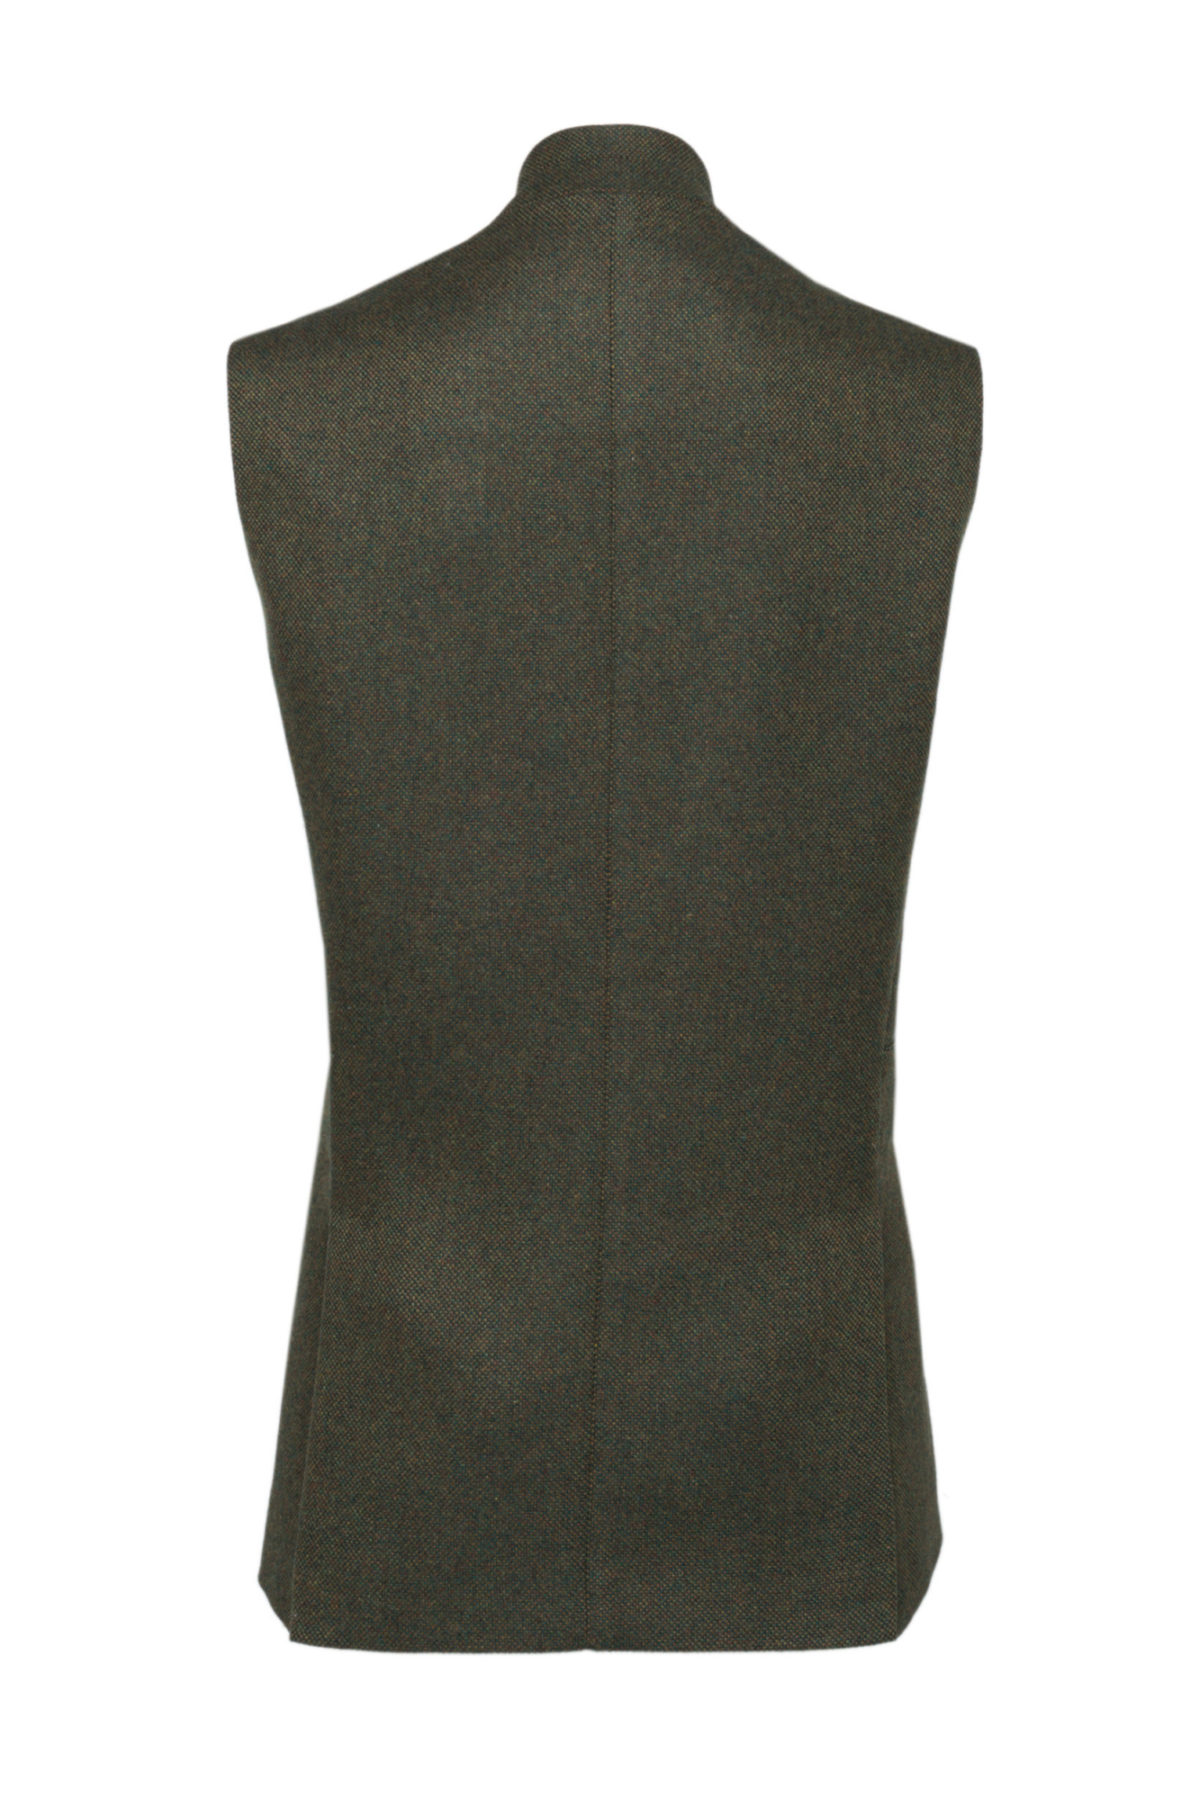 Pip Howeson Mens William Waistcoat Back